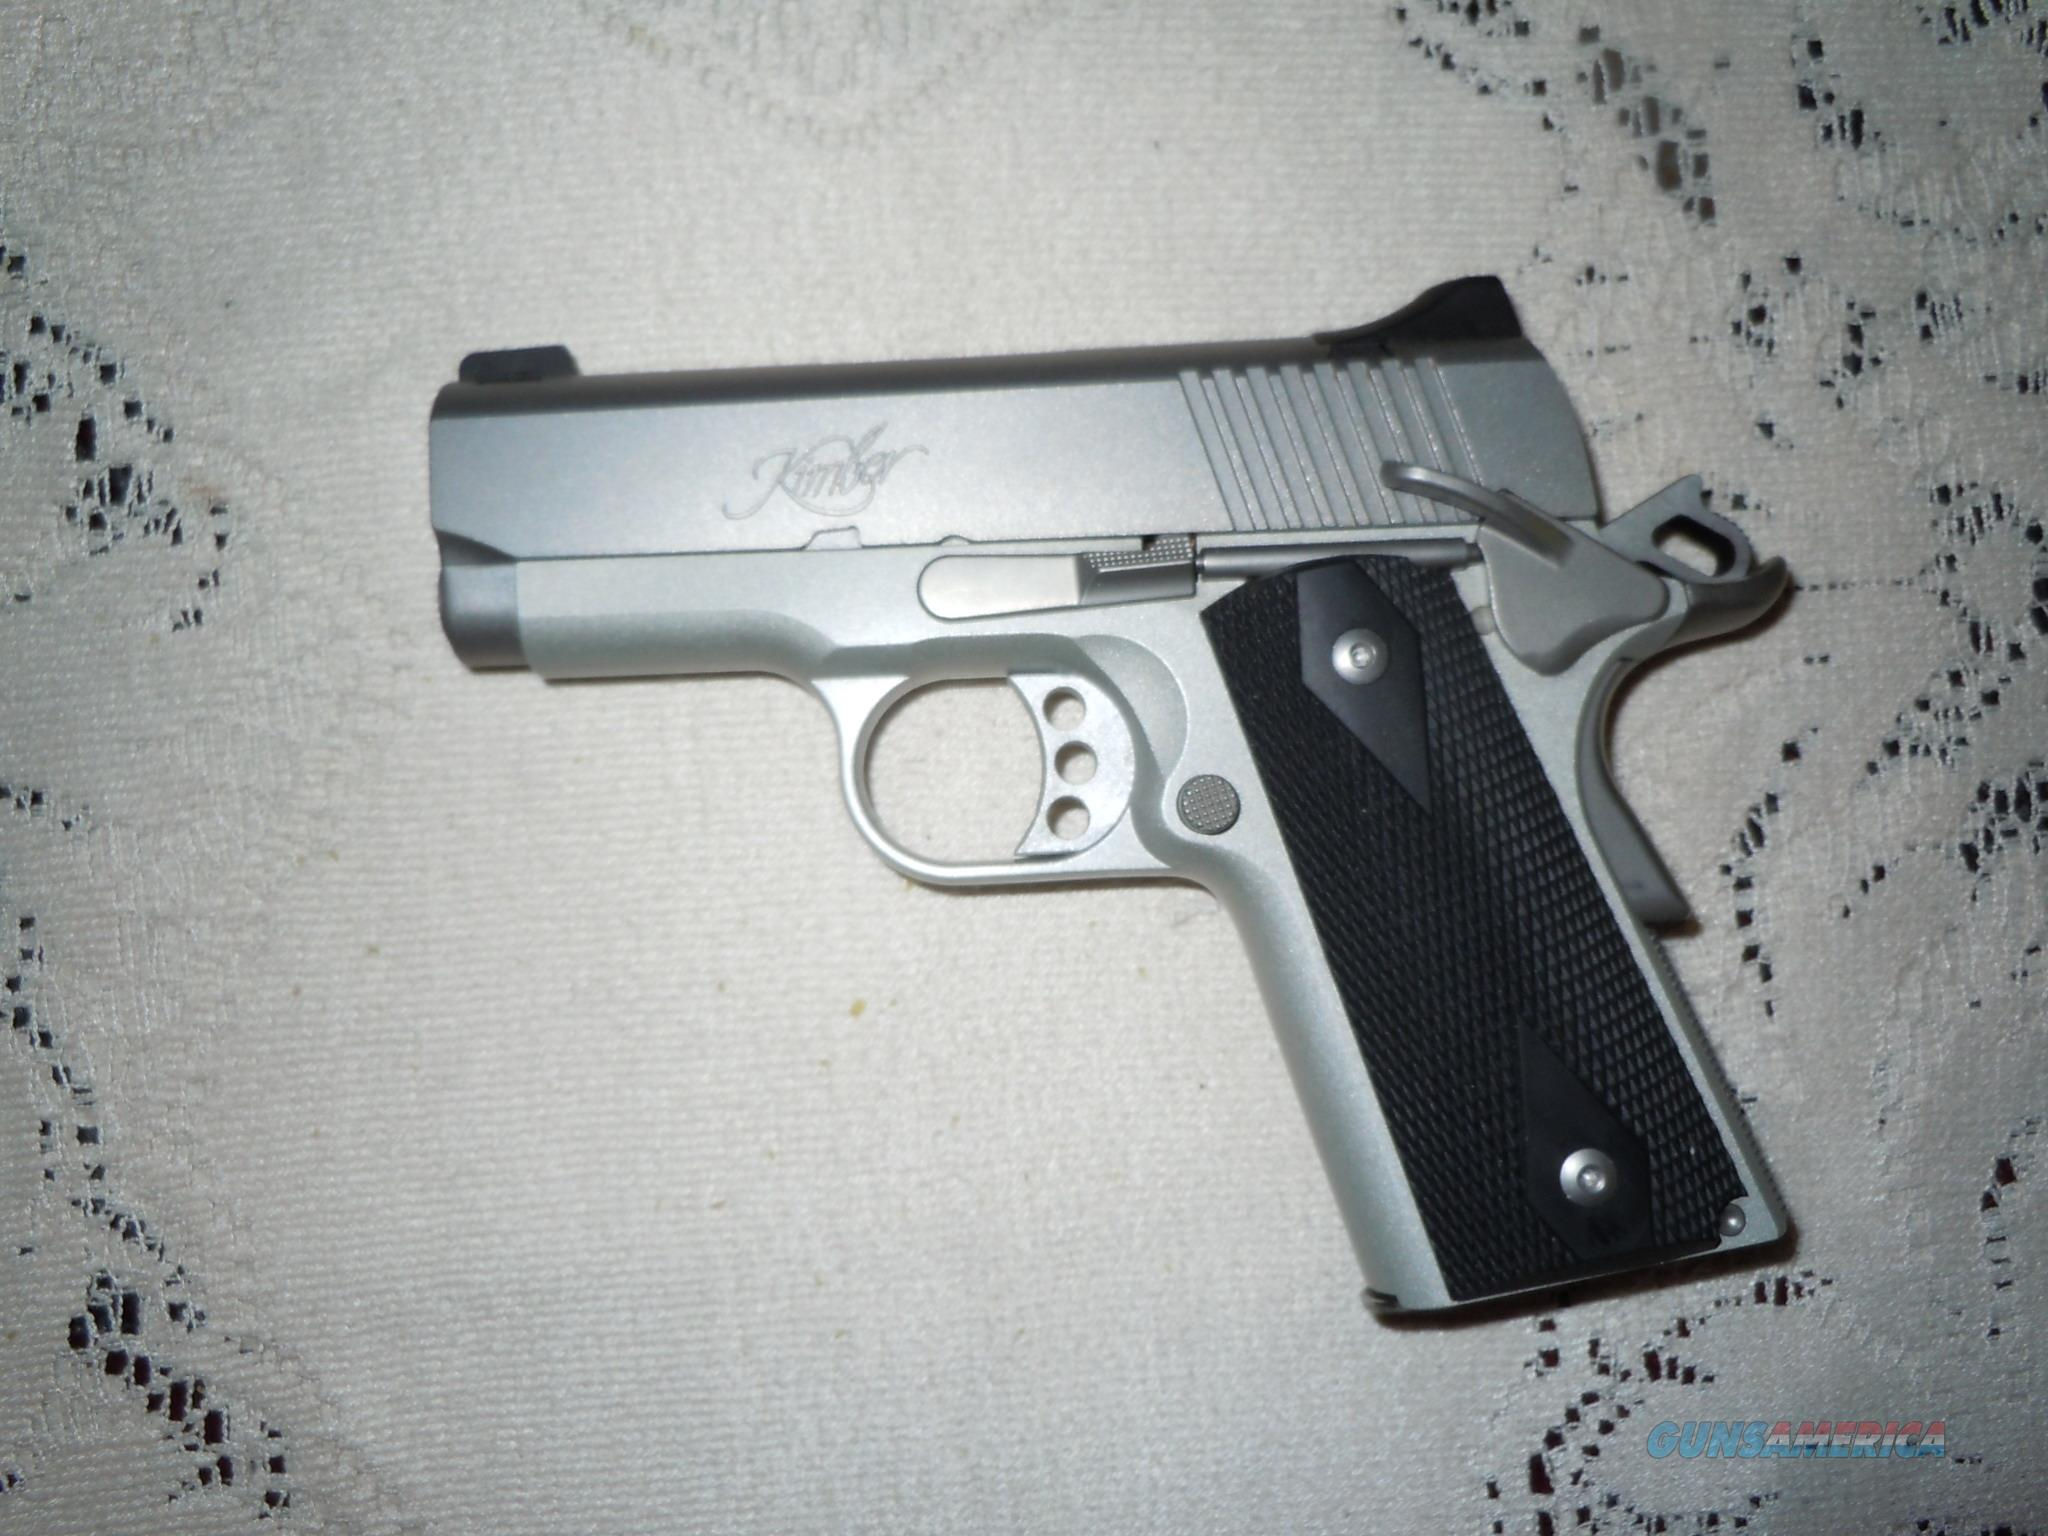 "KIMBER  45ACP stainless ULTRA CARRY II  45 caliber 1911 Test fired- 3""  Guns > Pistols > Kimber of America Pistols > 1911"